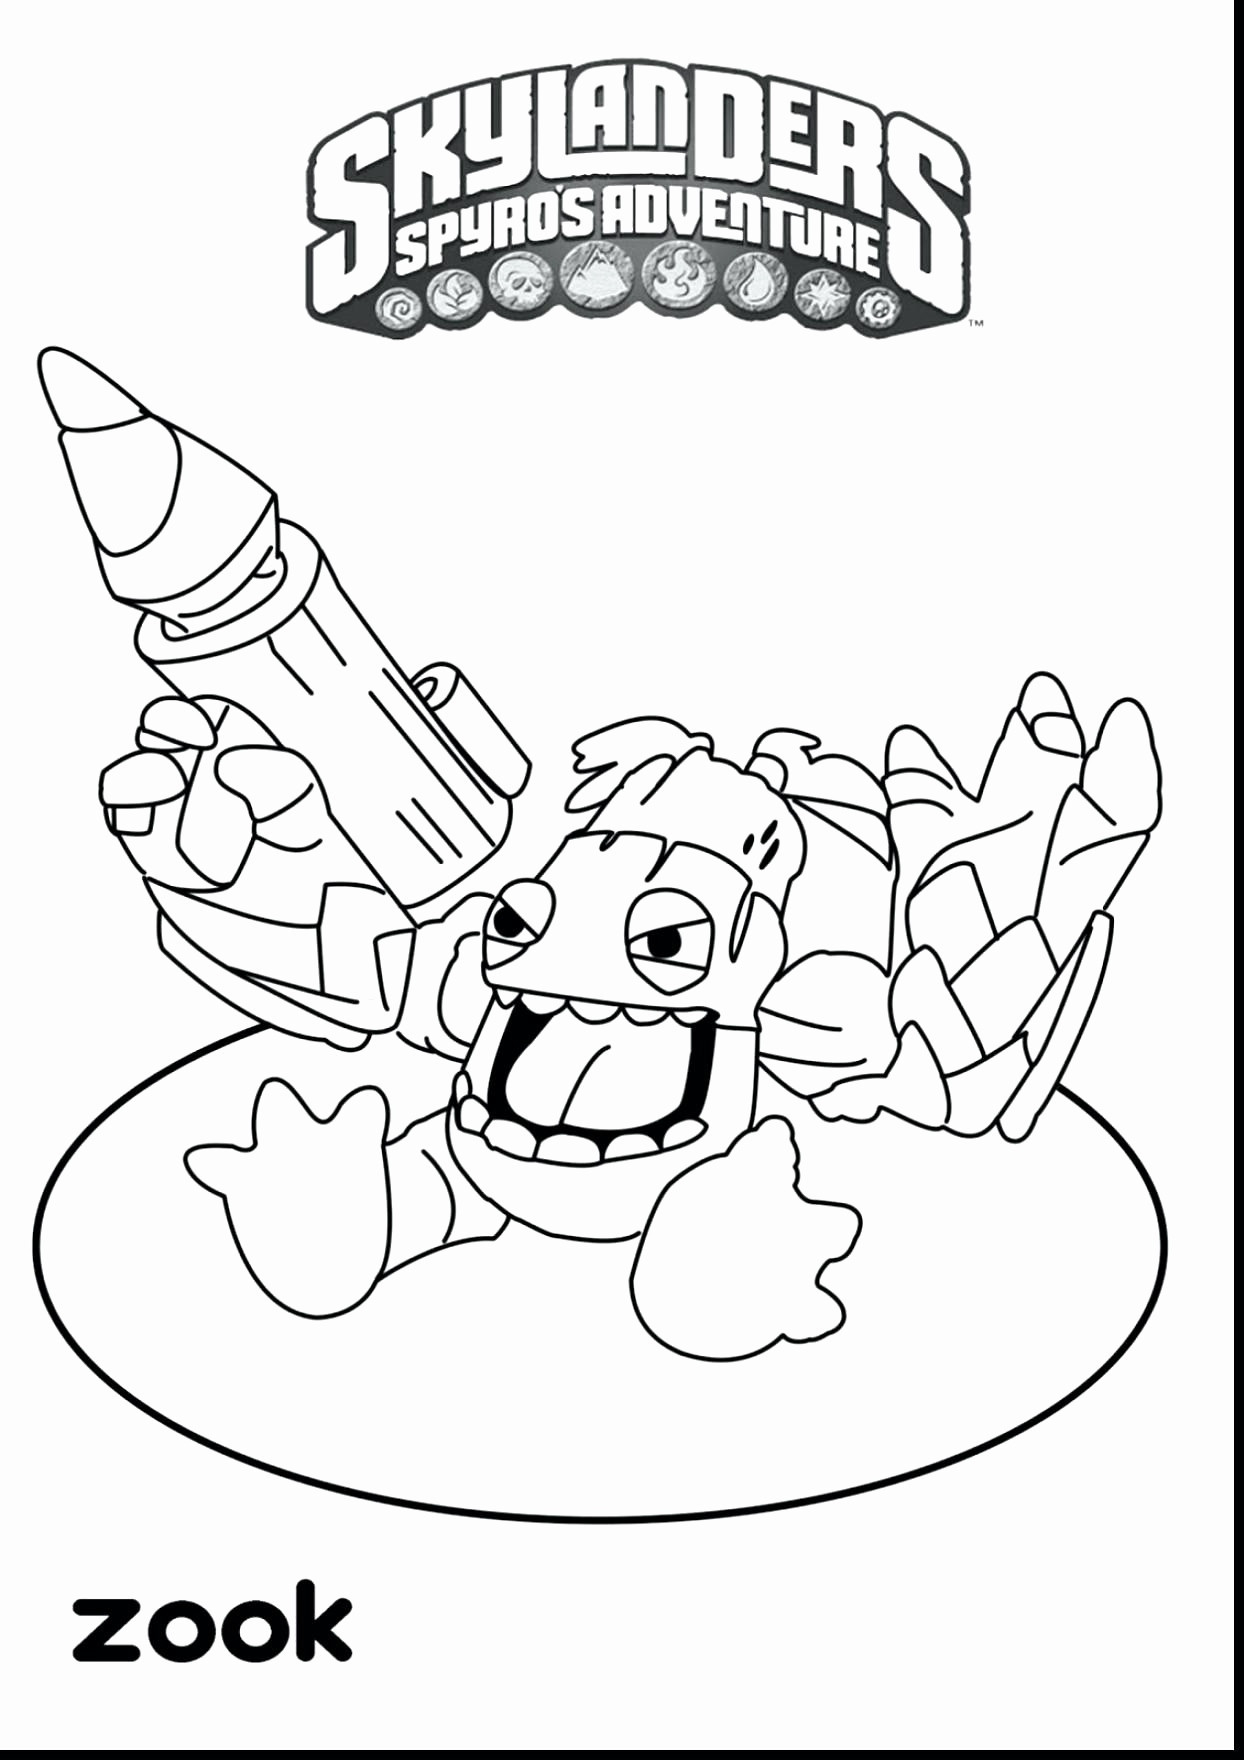 Unhealthy Food Coloring Pages - Fast Food Coloring Pages Healthy Foods Coloring Pages Free Coloring